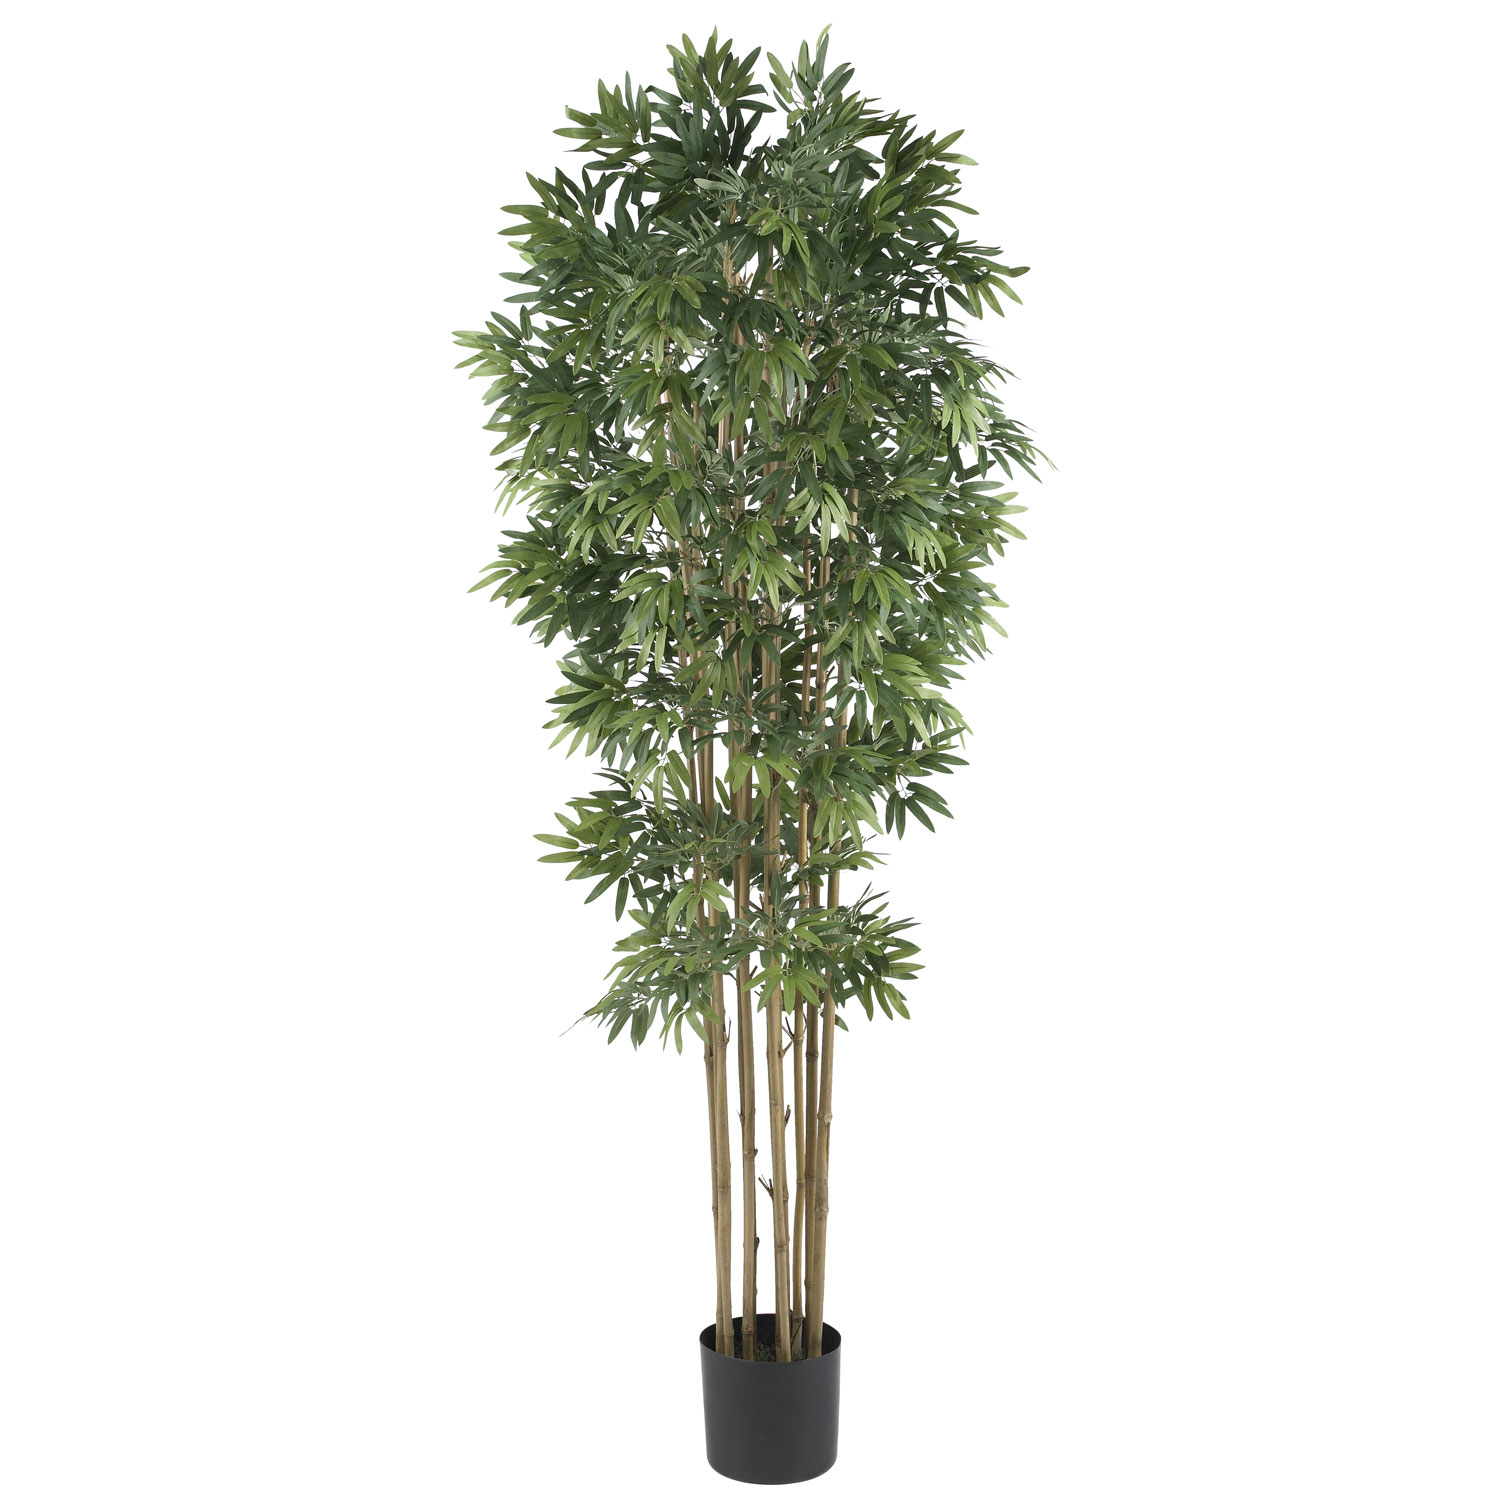 5 Foot Artificial Christmas Trees